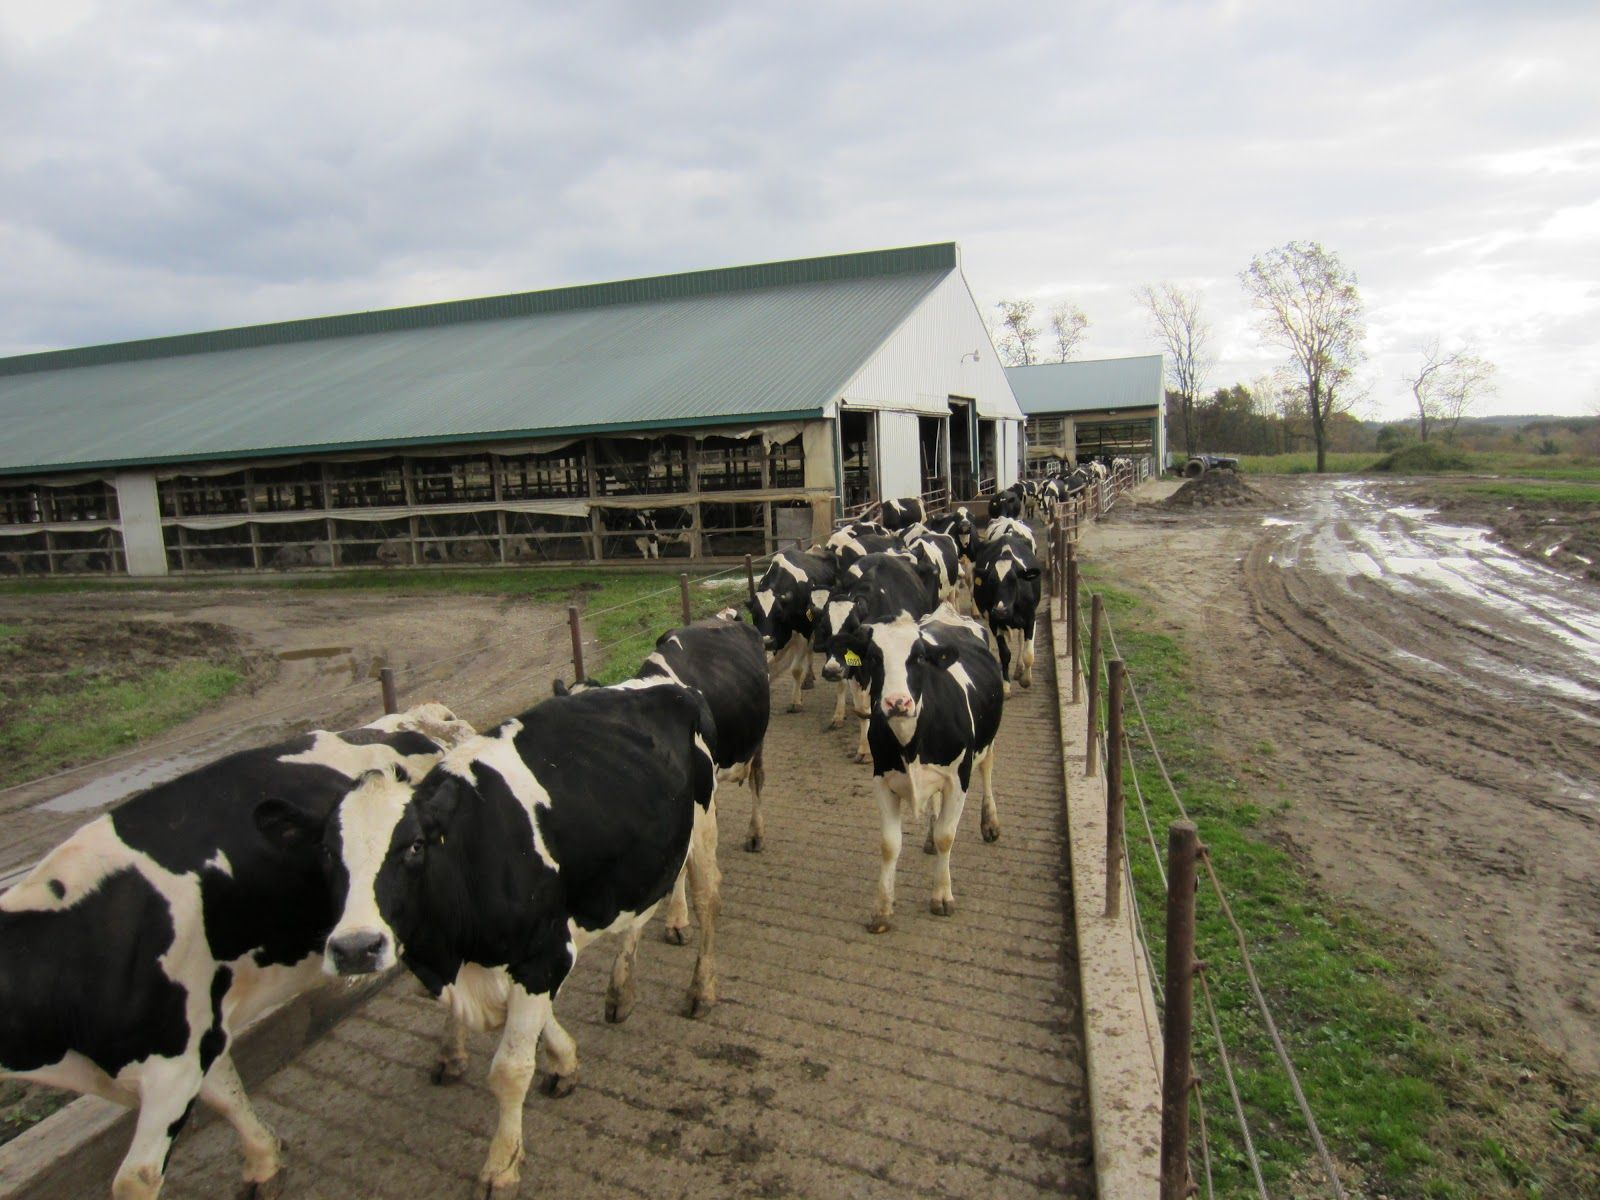 Cows in milking parlor cows walking from their barn to the milking parlor